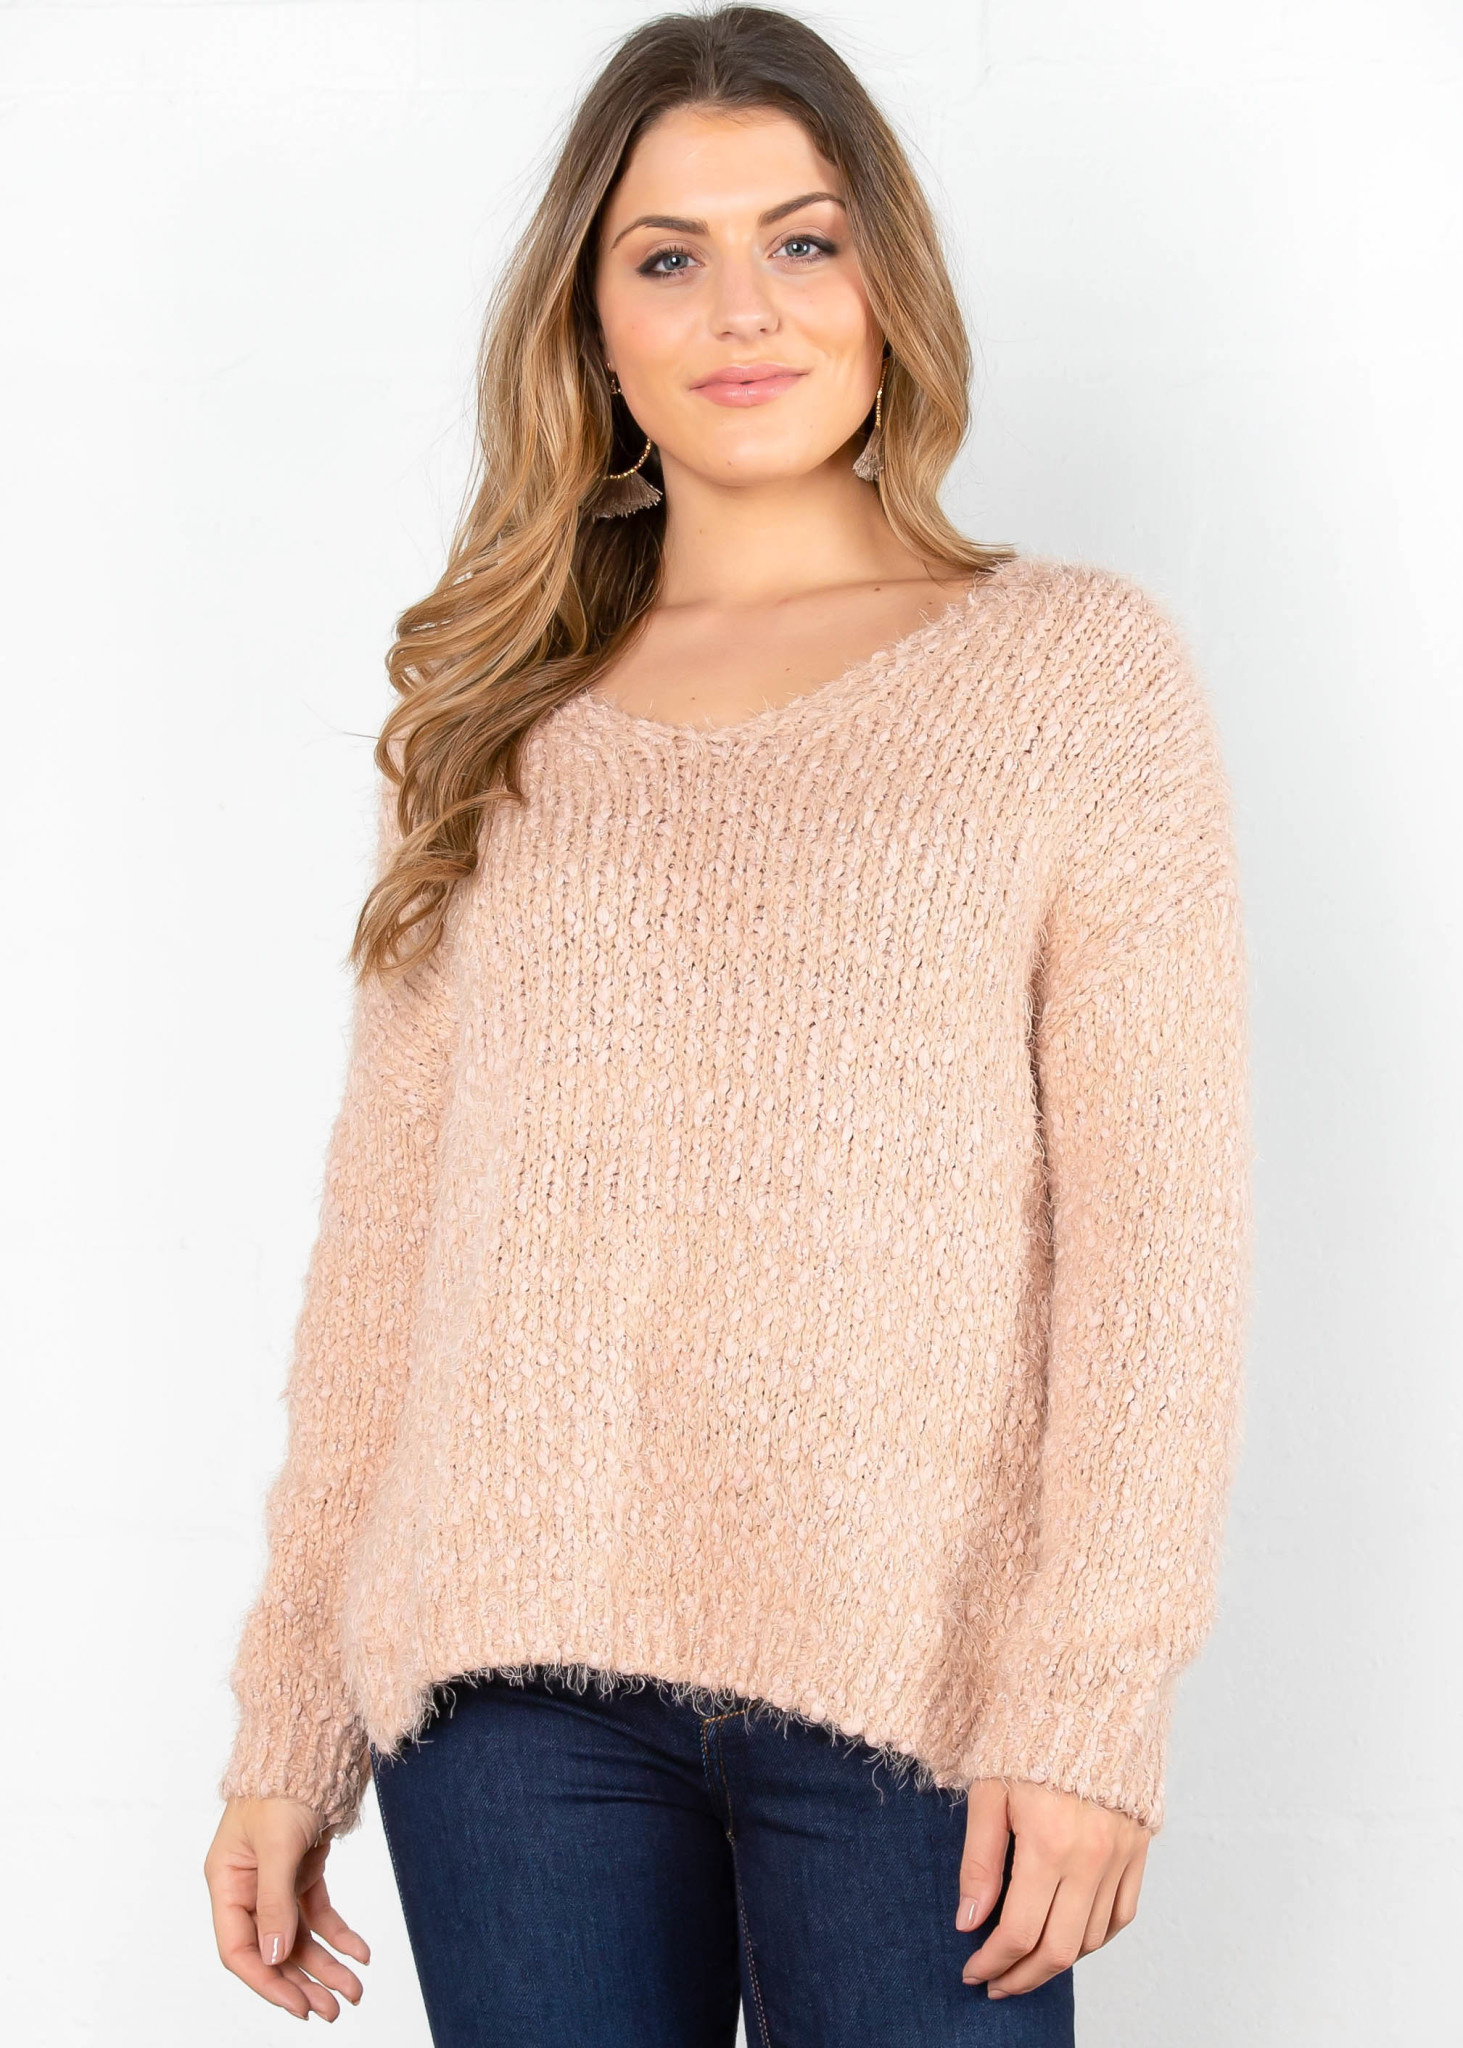 SUGAR PLUM FAIRY SWEATER